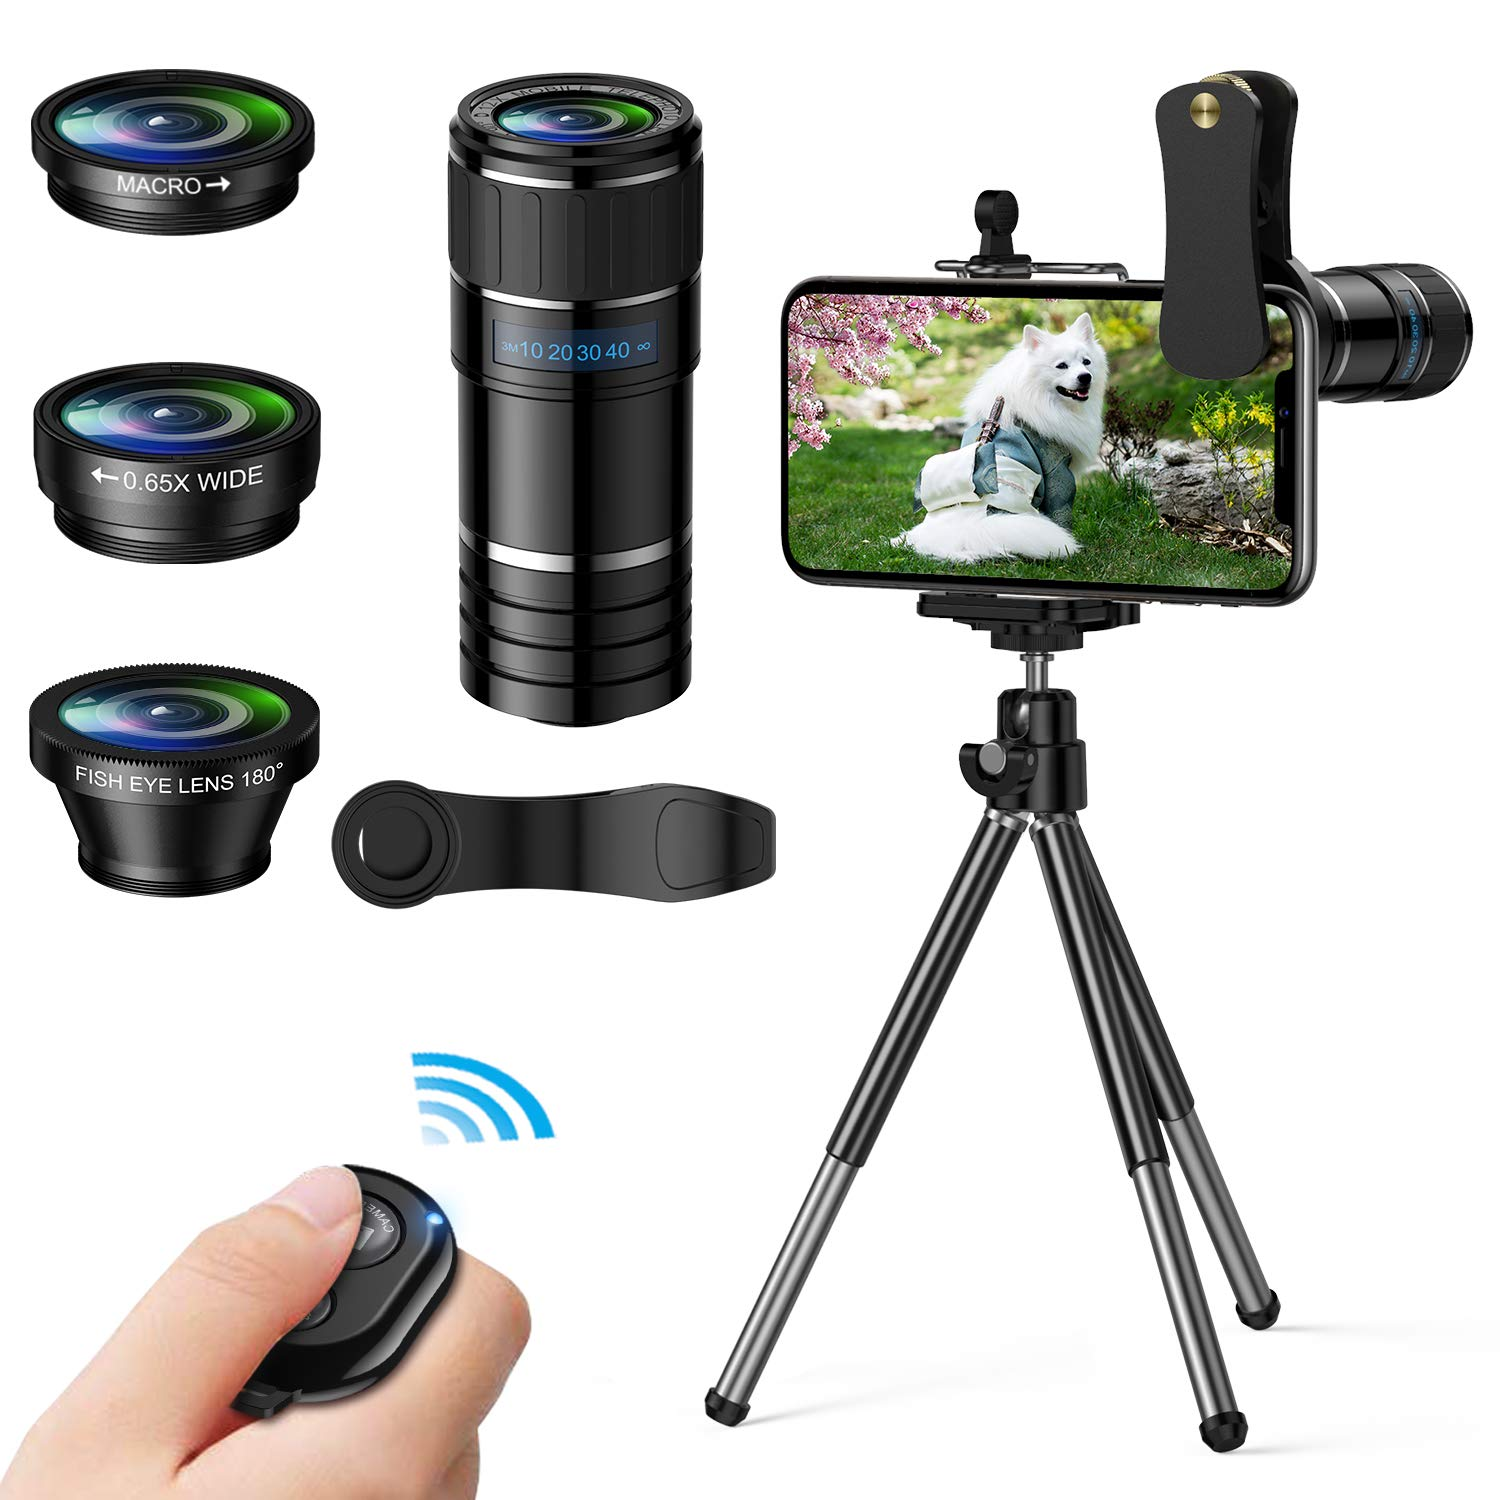 Phone Camera Lens, 4 in 1 Cell Phone Lens kit, 12x Telephoto Lens + 0.65x Wide Angle Lens + Macro Lens + Fisheye Lens,Clip-On Lenses for iPhone Android Smartphone with Tripod+Shutter Remote by EWEIMA